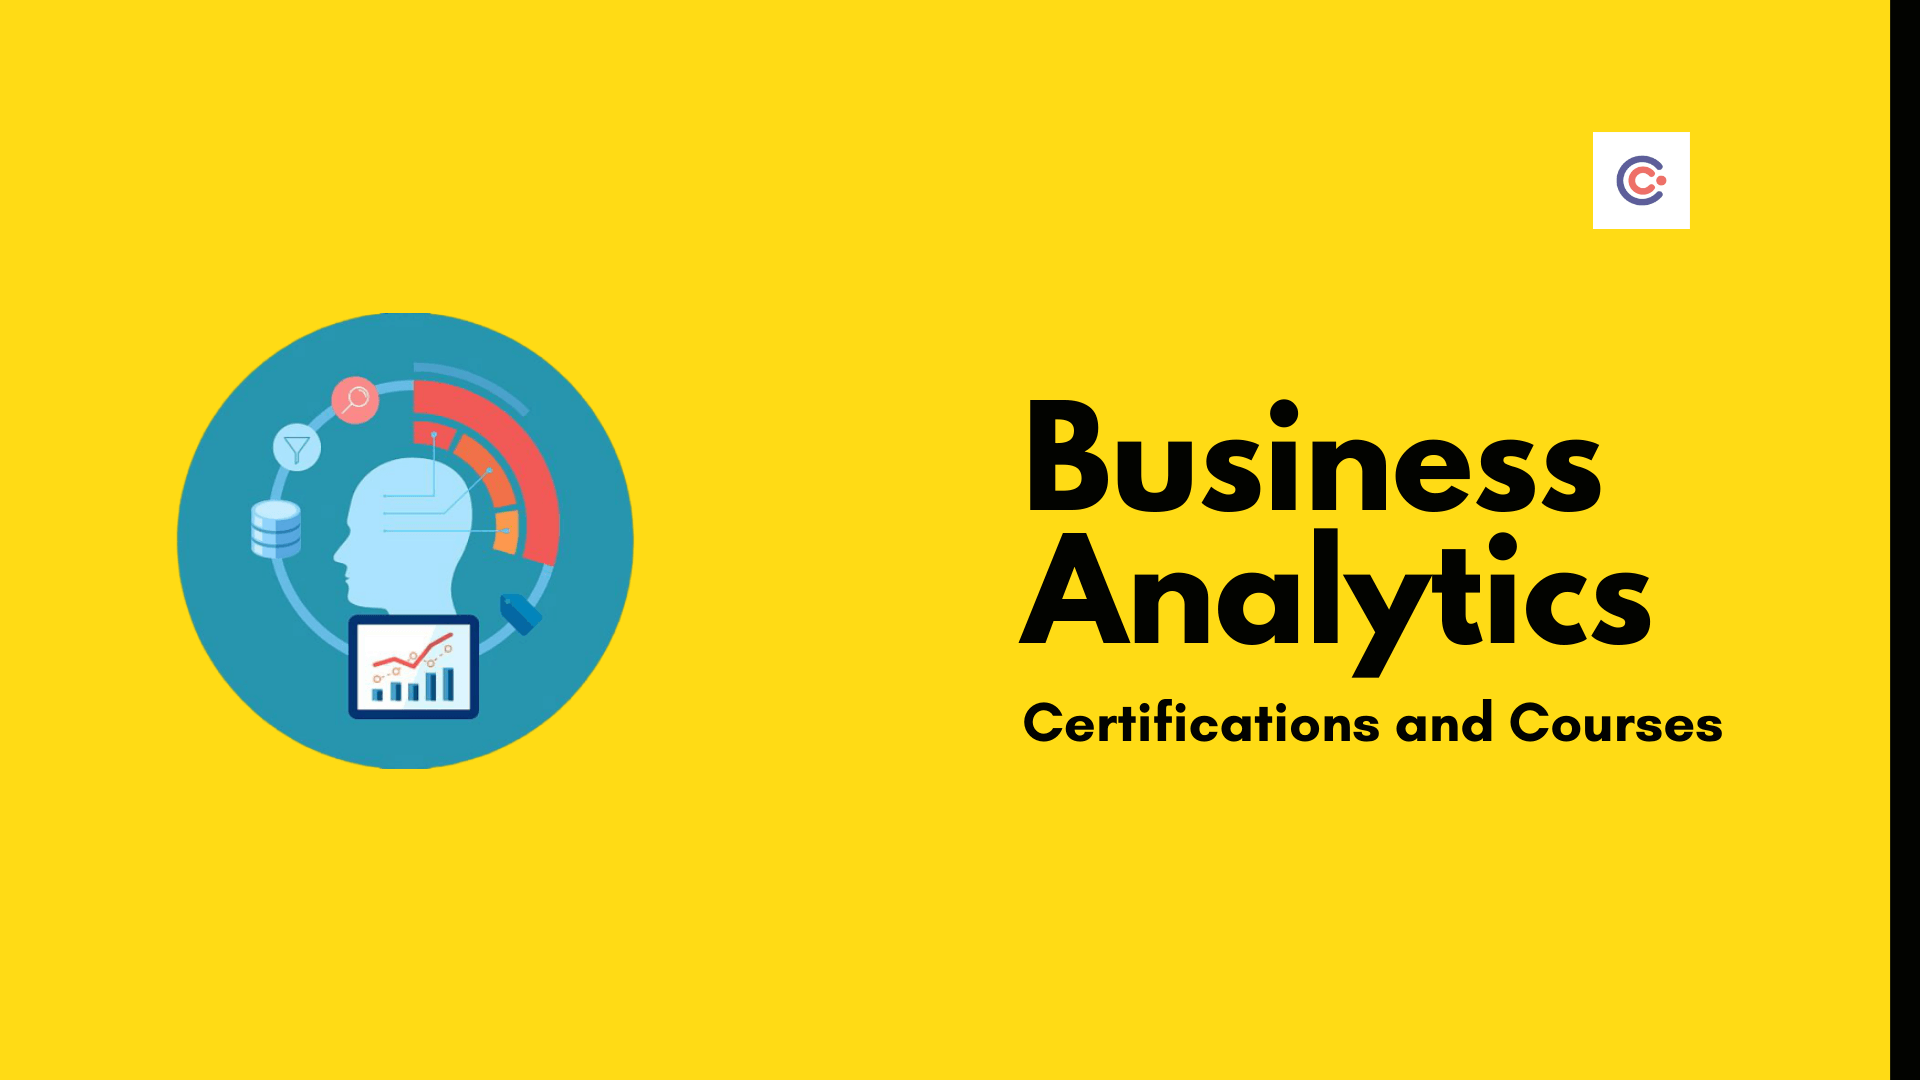 14 Best Business Analytics Certifications - 2021